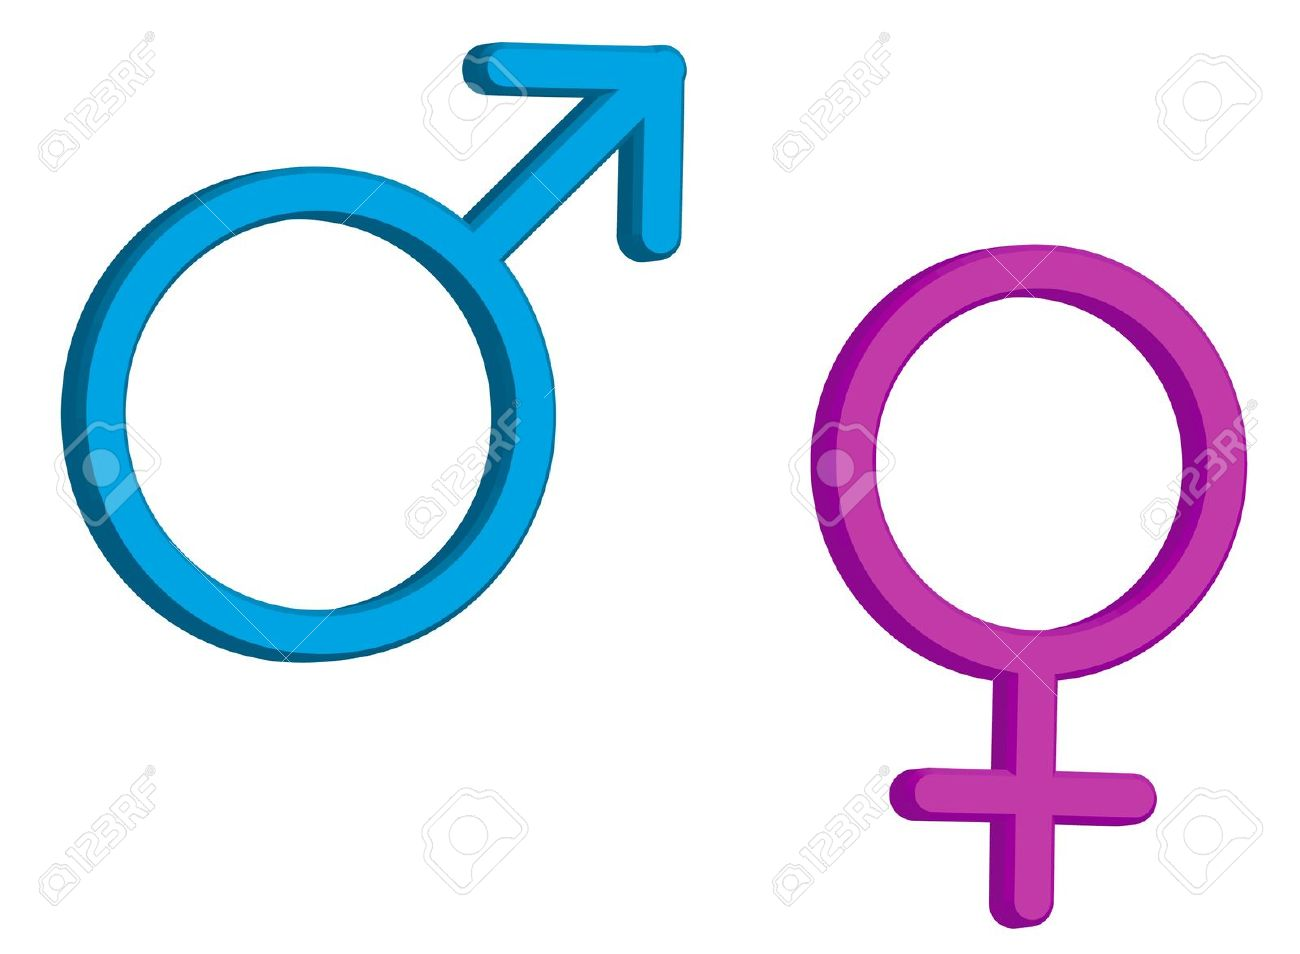 Gender symbols 3d stock photo picture and royalty free image gender symbols 3d stock photo 9011959 buycottarizona